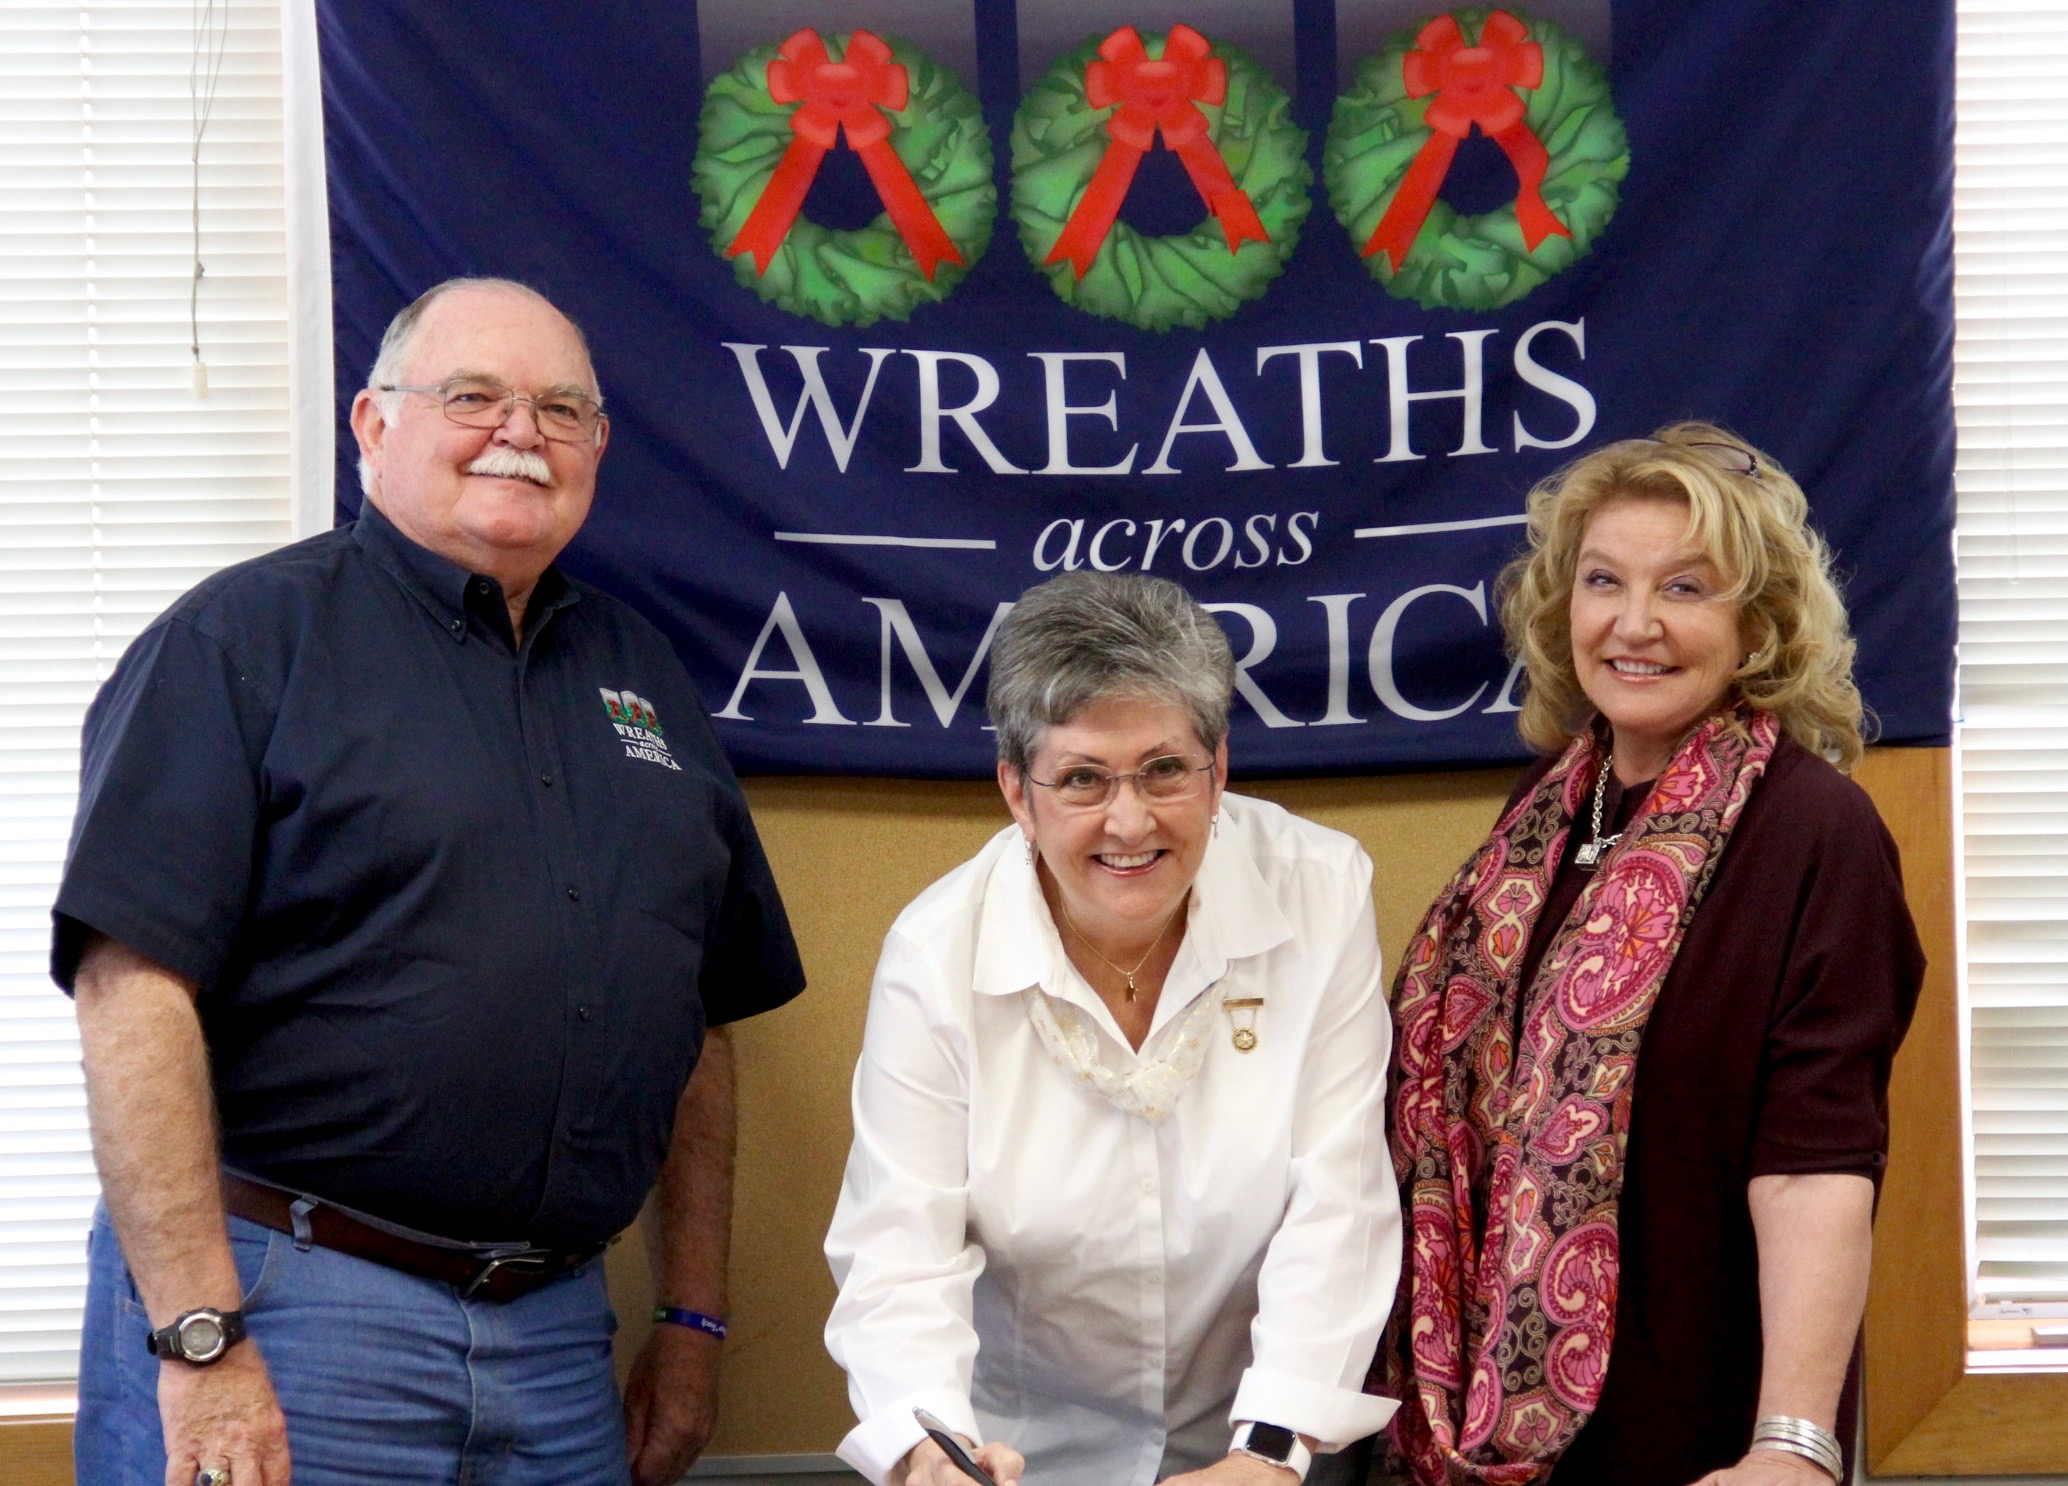 Wayne Hanson, Wreaths Across America's Chairman of the Board with AGSM President Candy Martin and Wreaths Across America's Executive Director, Karen Worcester at agreement signing October 20, 2016